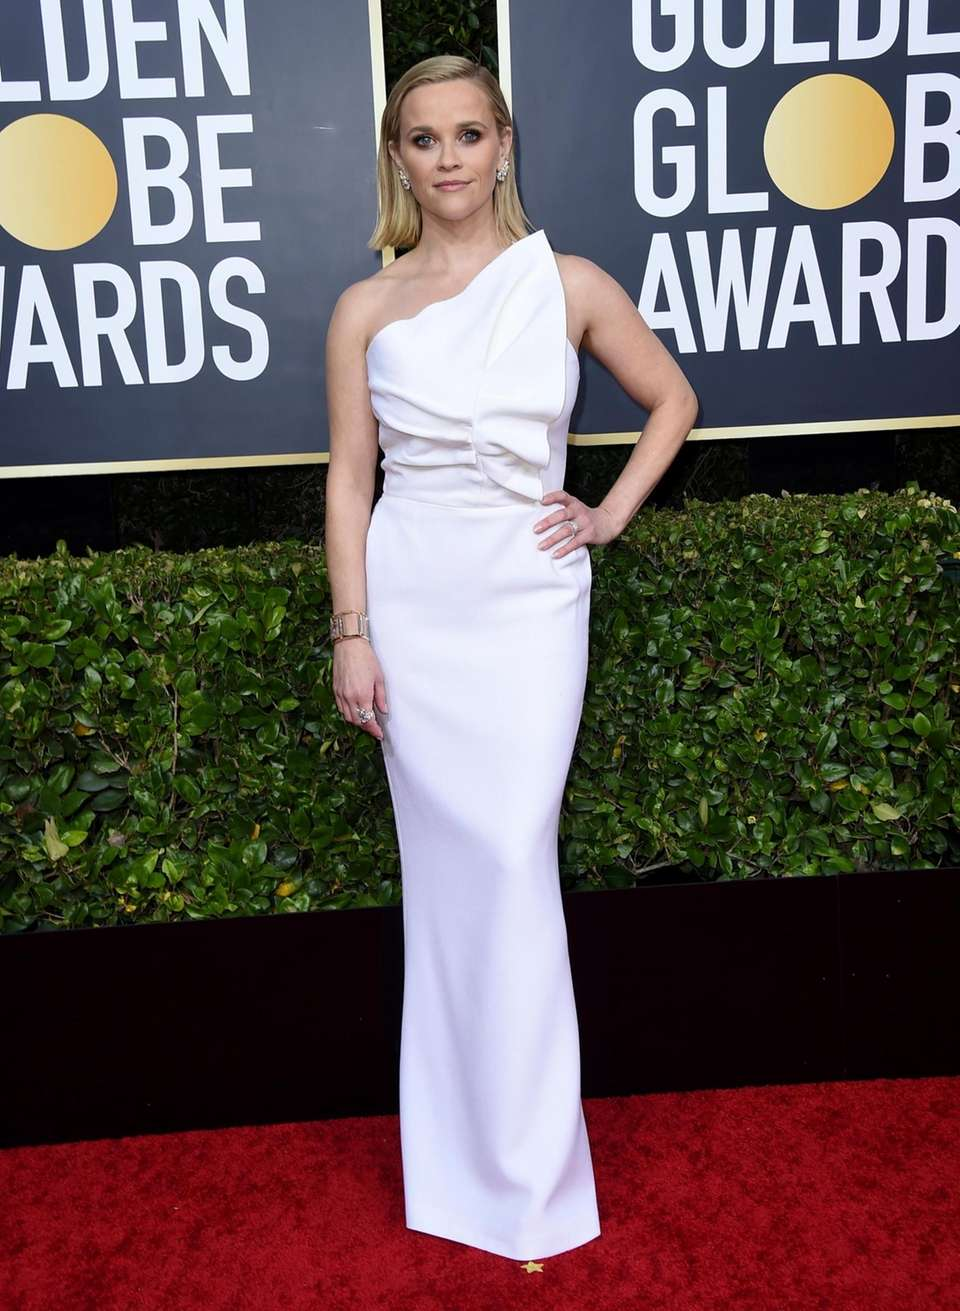 Reese Witherspoon arrives at the 77th annual Golden